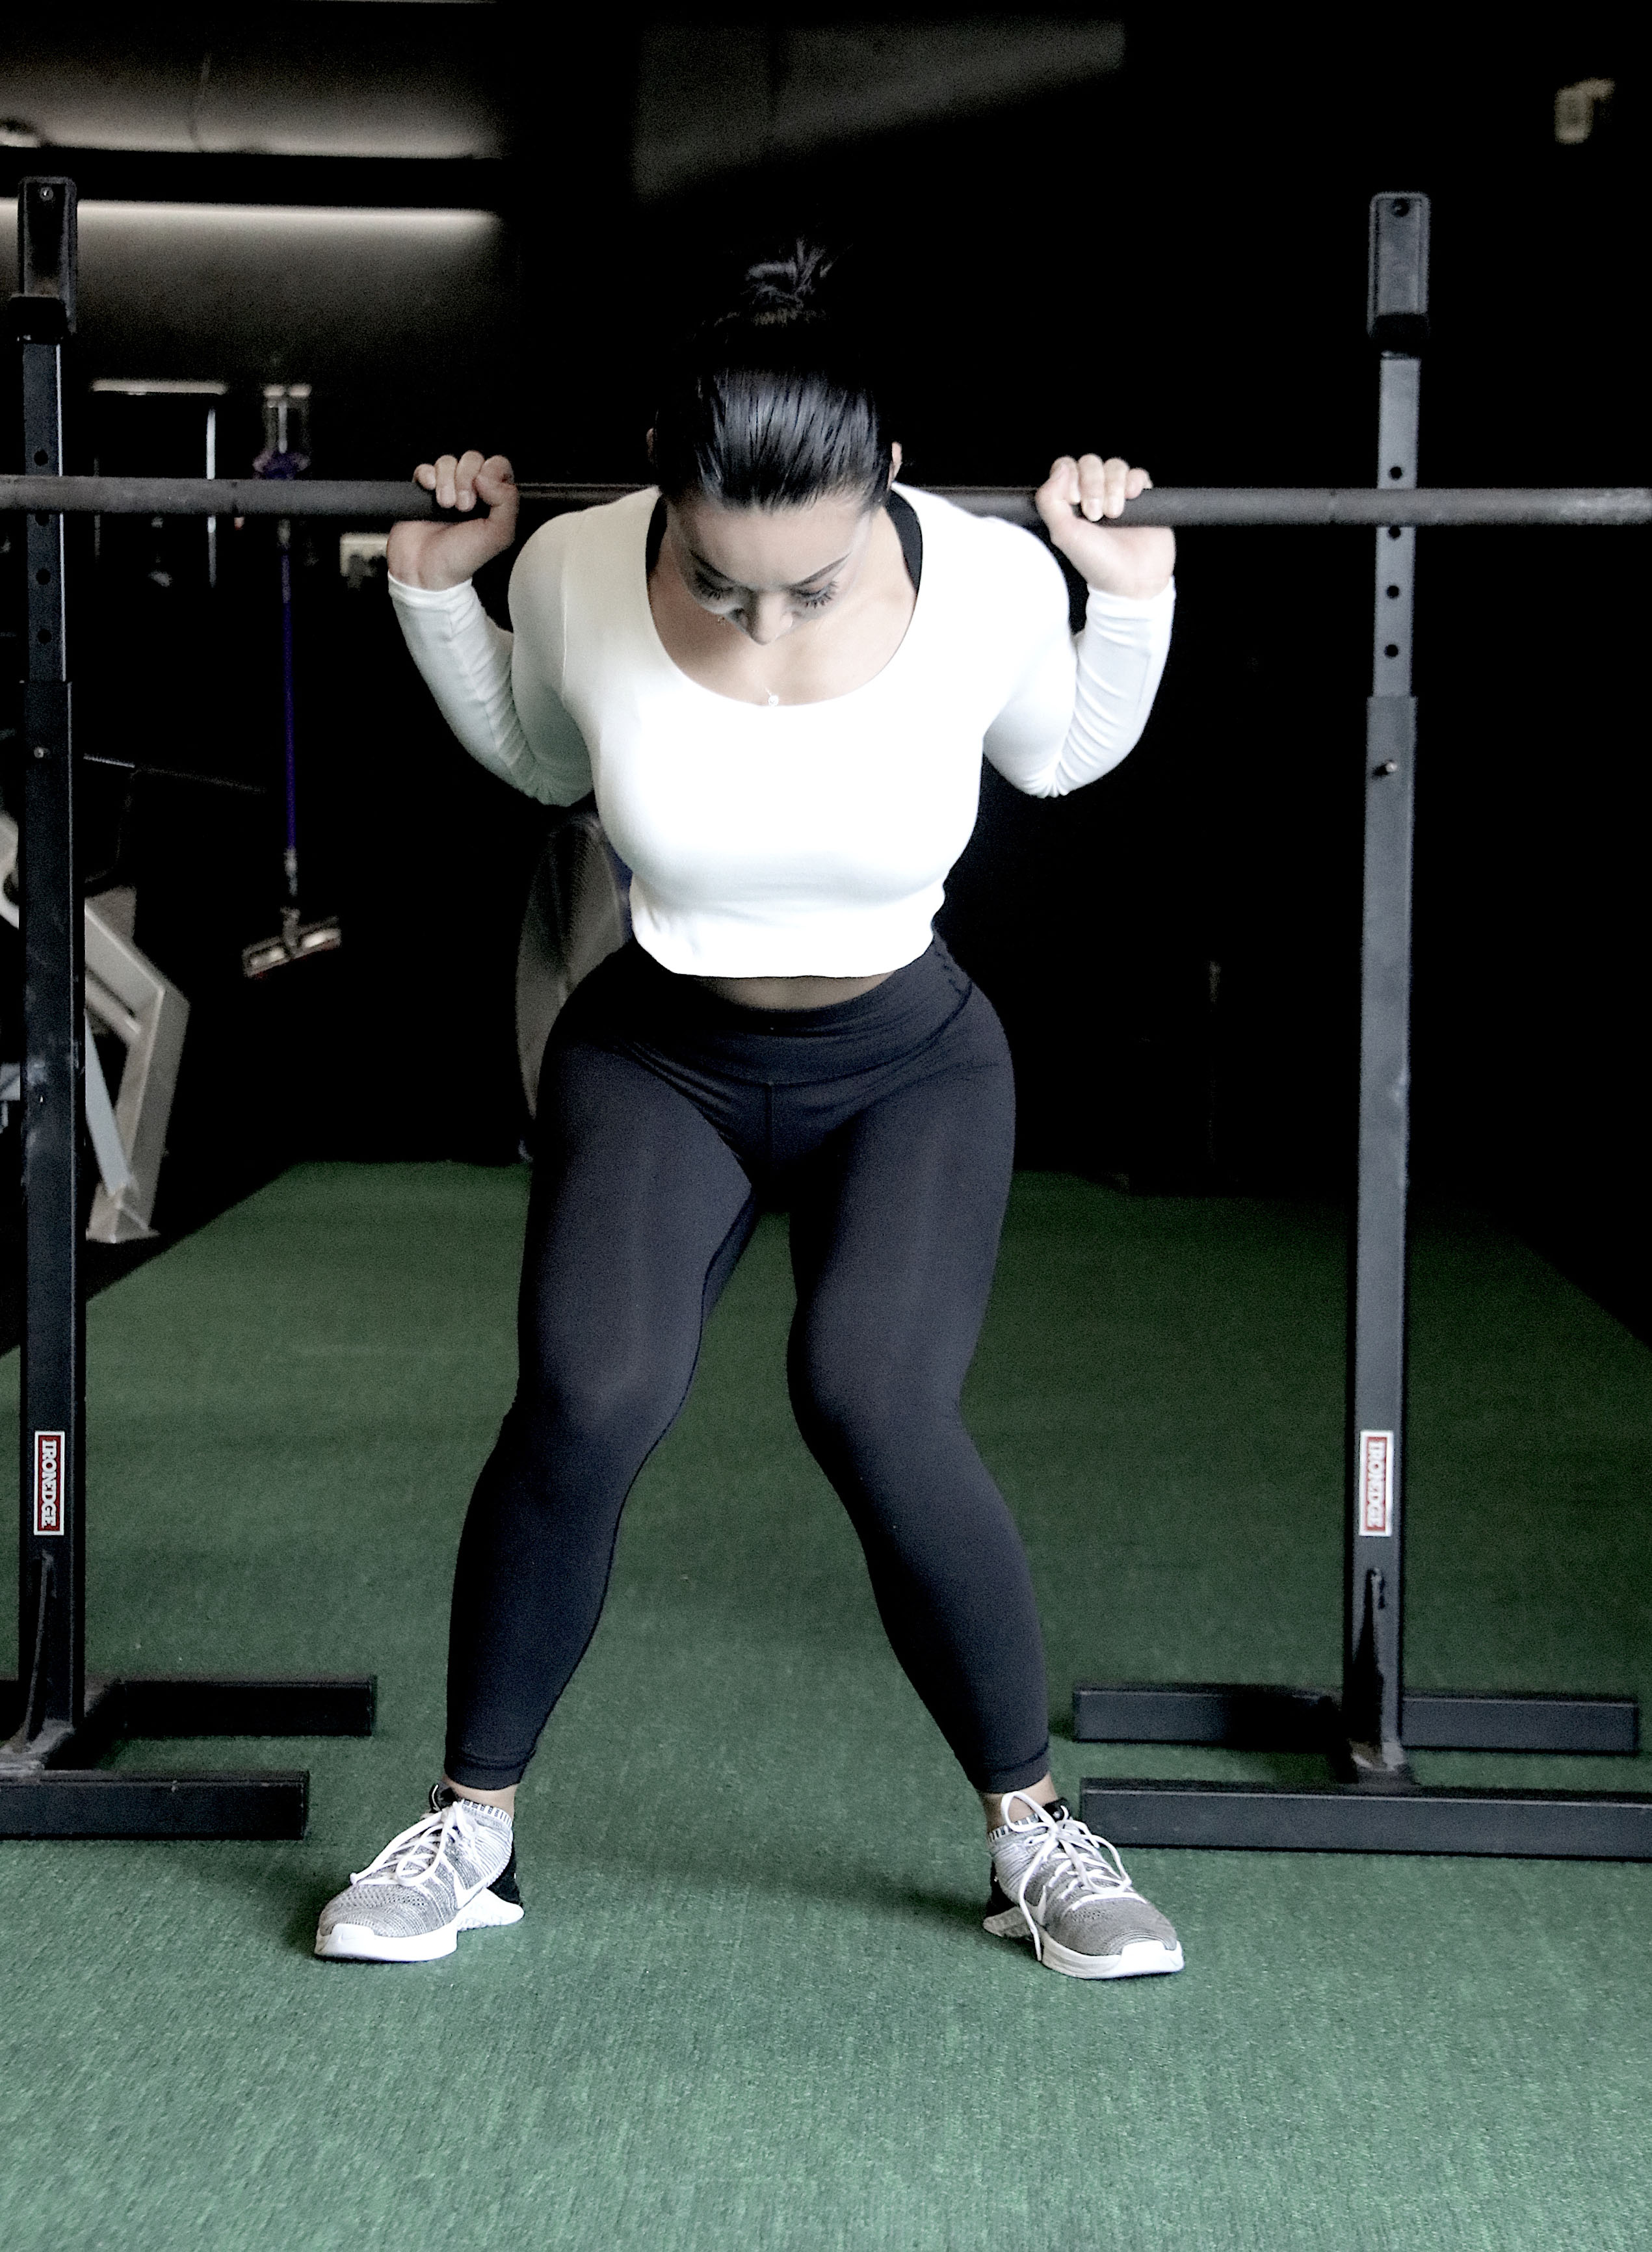 Squat mistake girls knees caving in